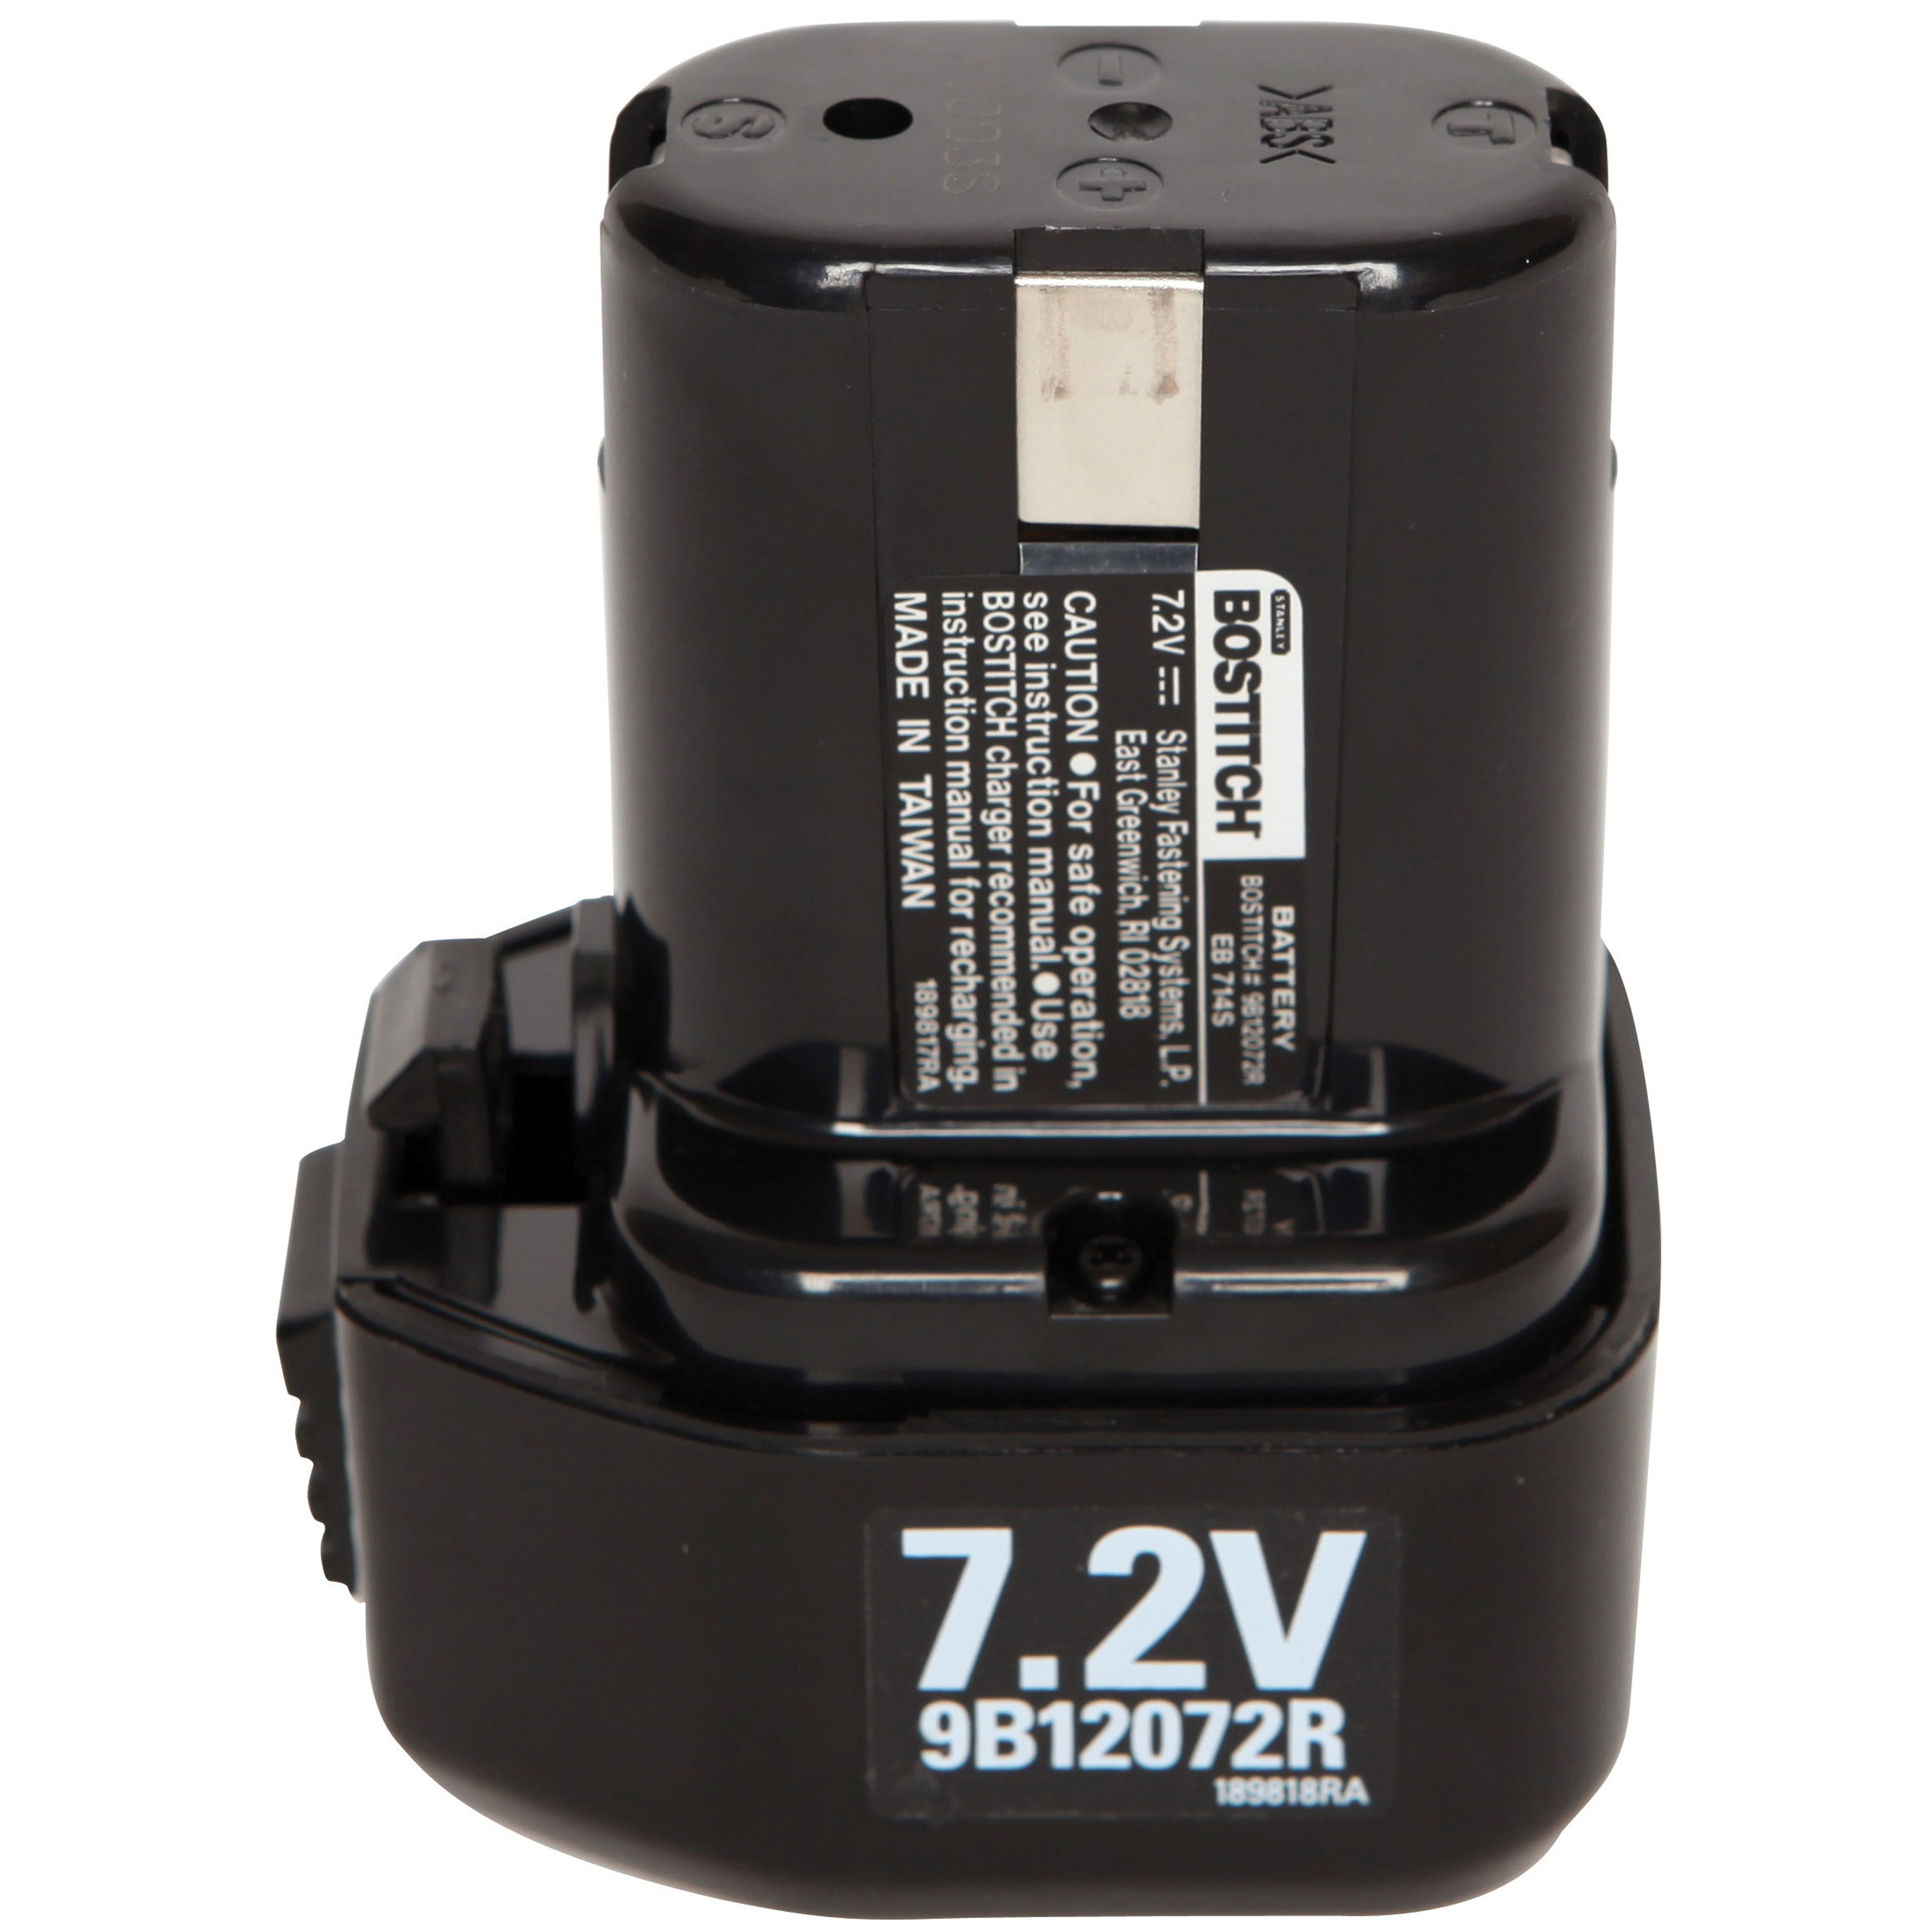 Bostitch - 72V NICD BATTERY - 9B12072R